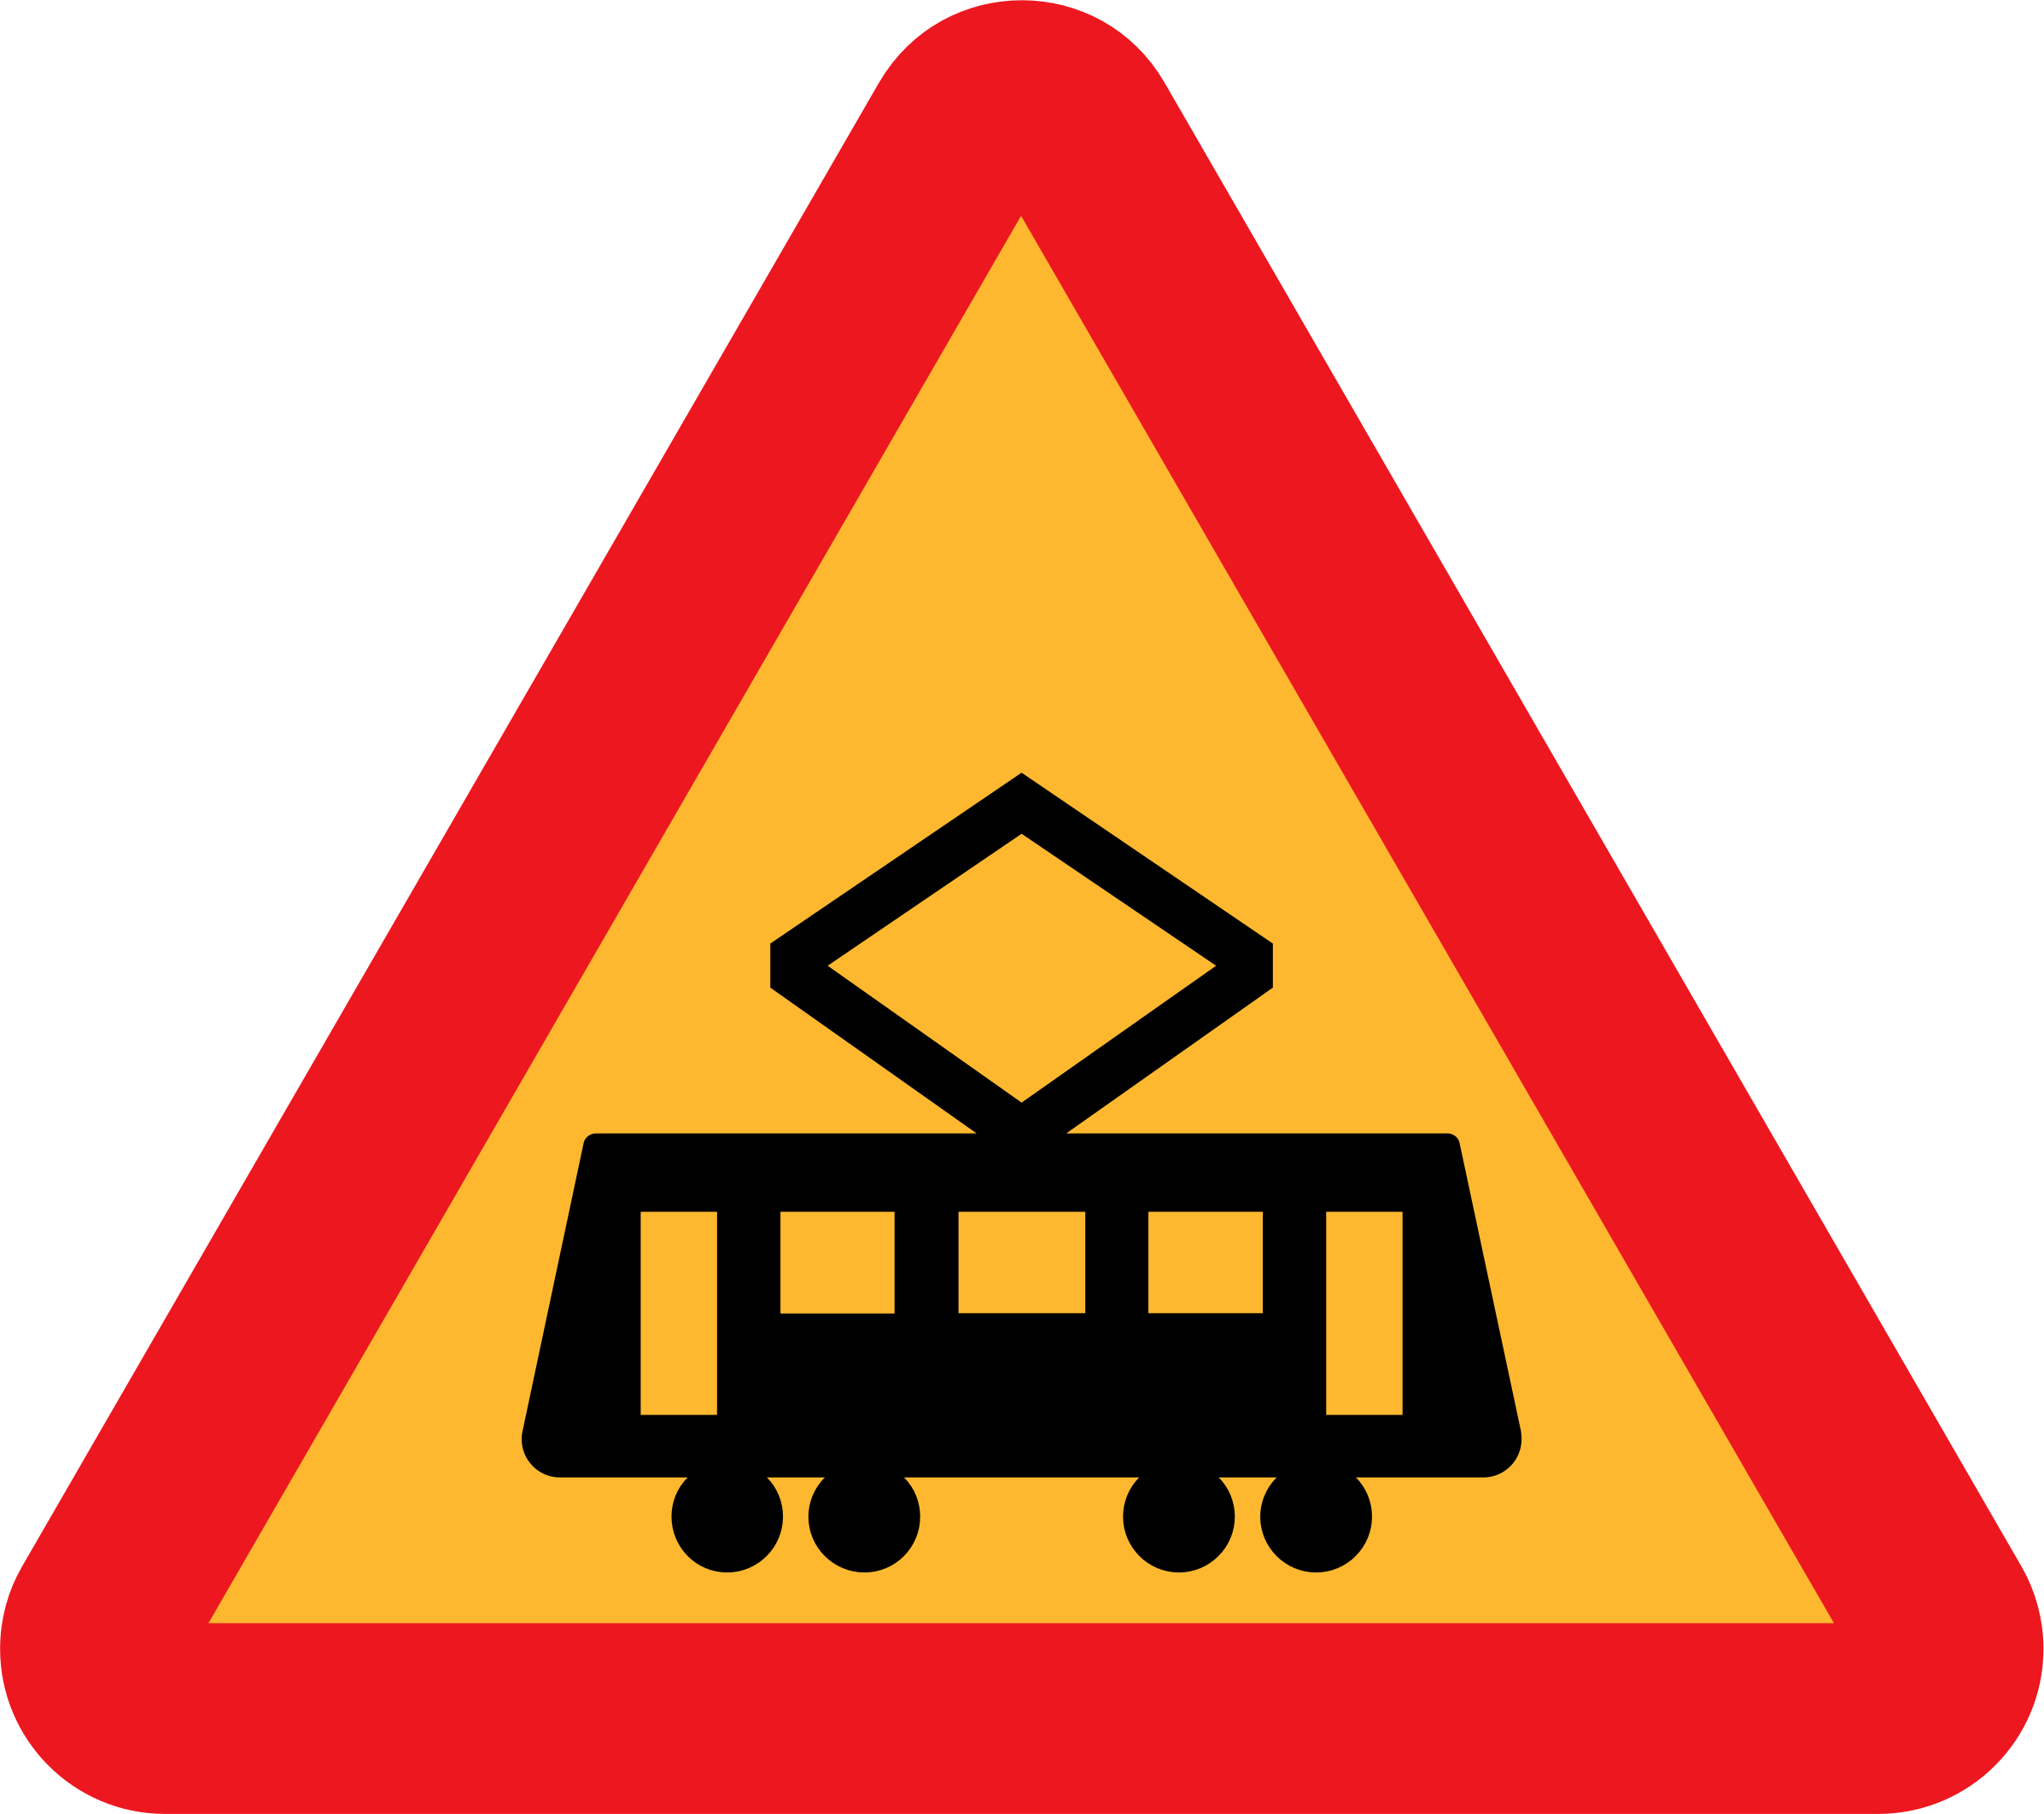 tram roadsign by ryanlerch